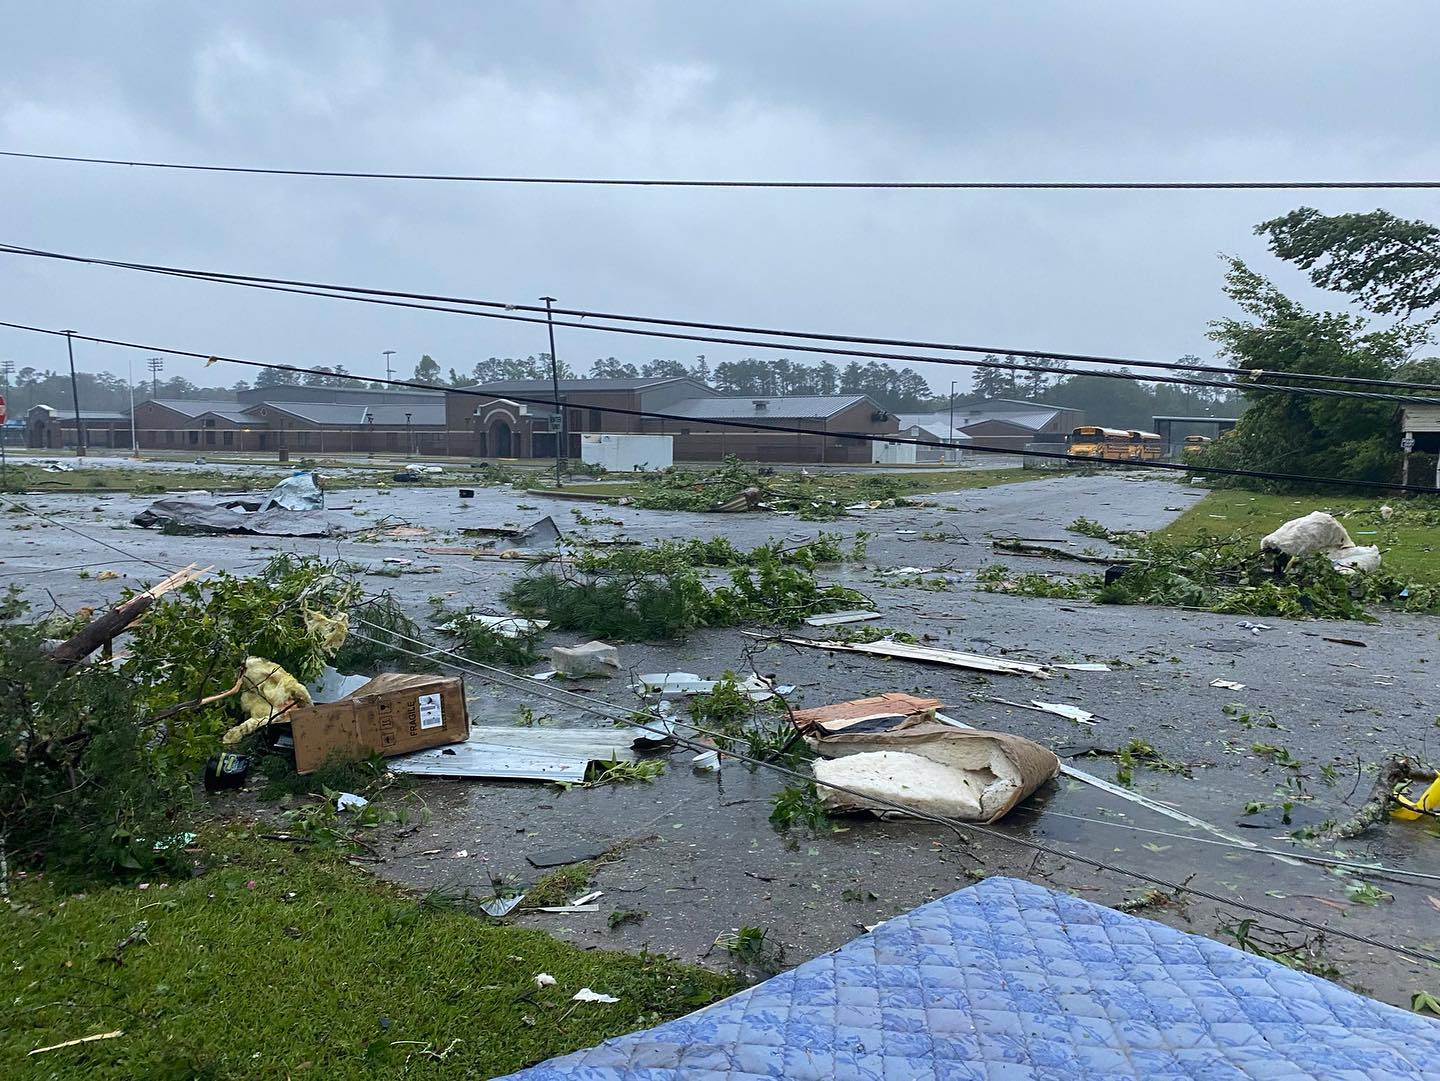 Mobile home park damaged in East Brewton